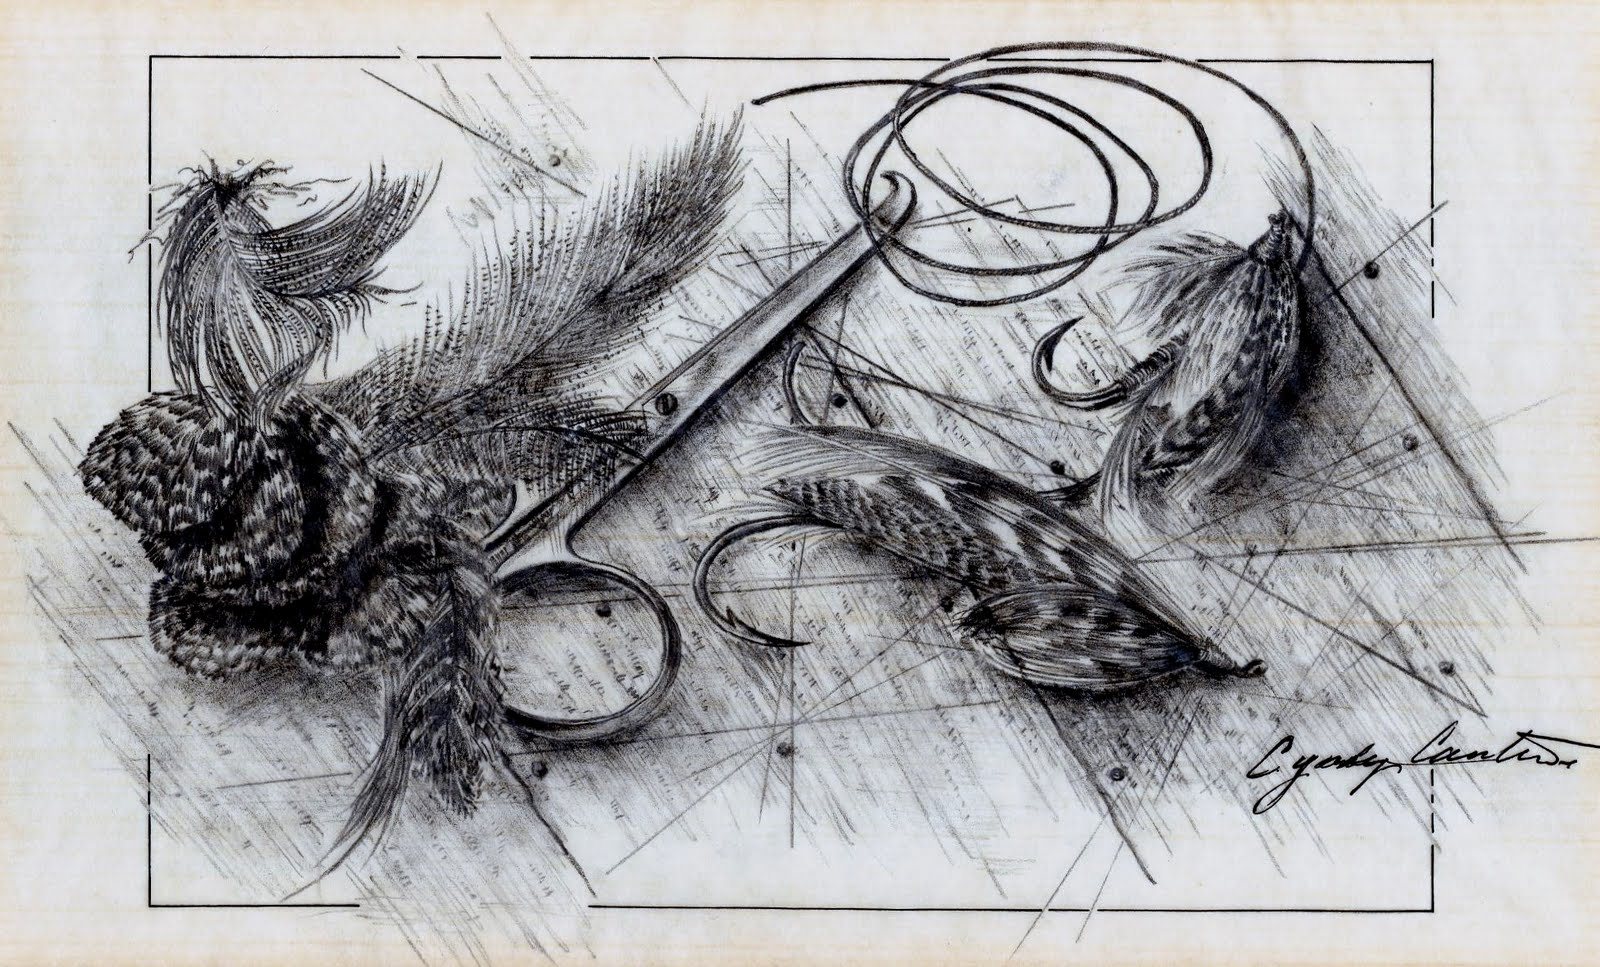 Fly fishing fly drawings - photo#14